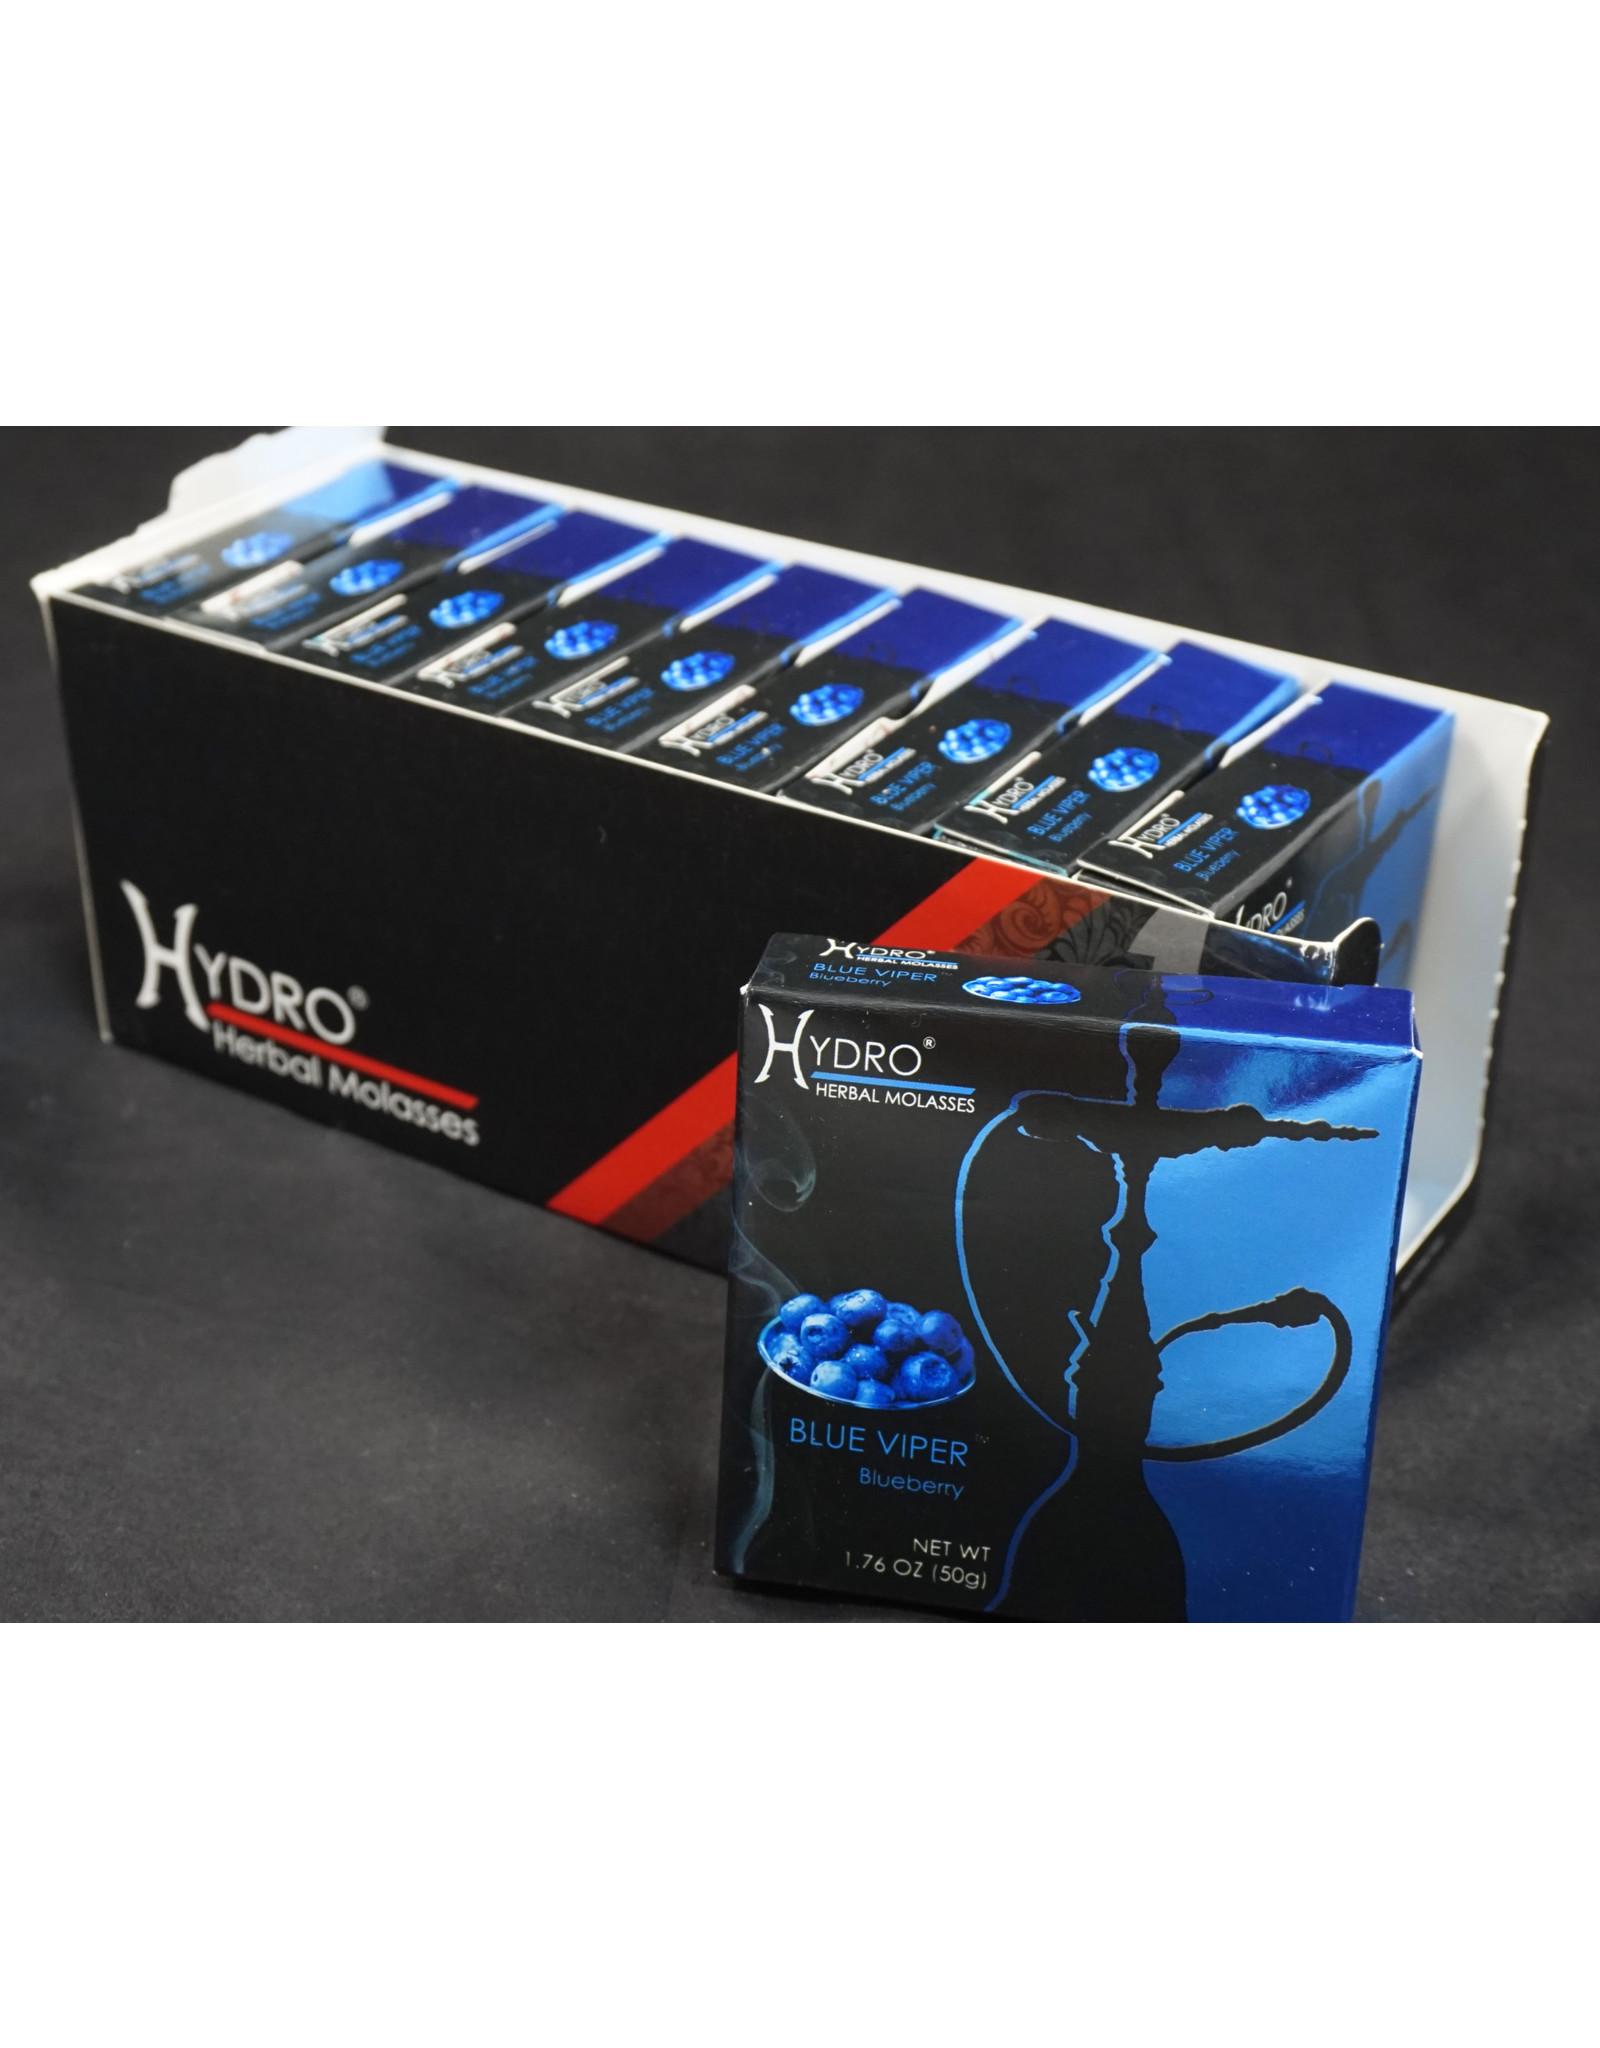 Hydro Herbal - Blue Viper Blueberry